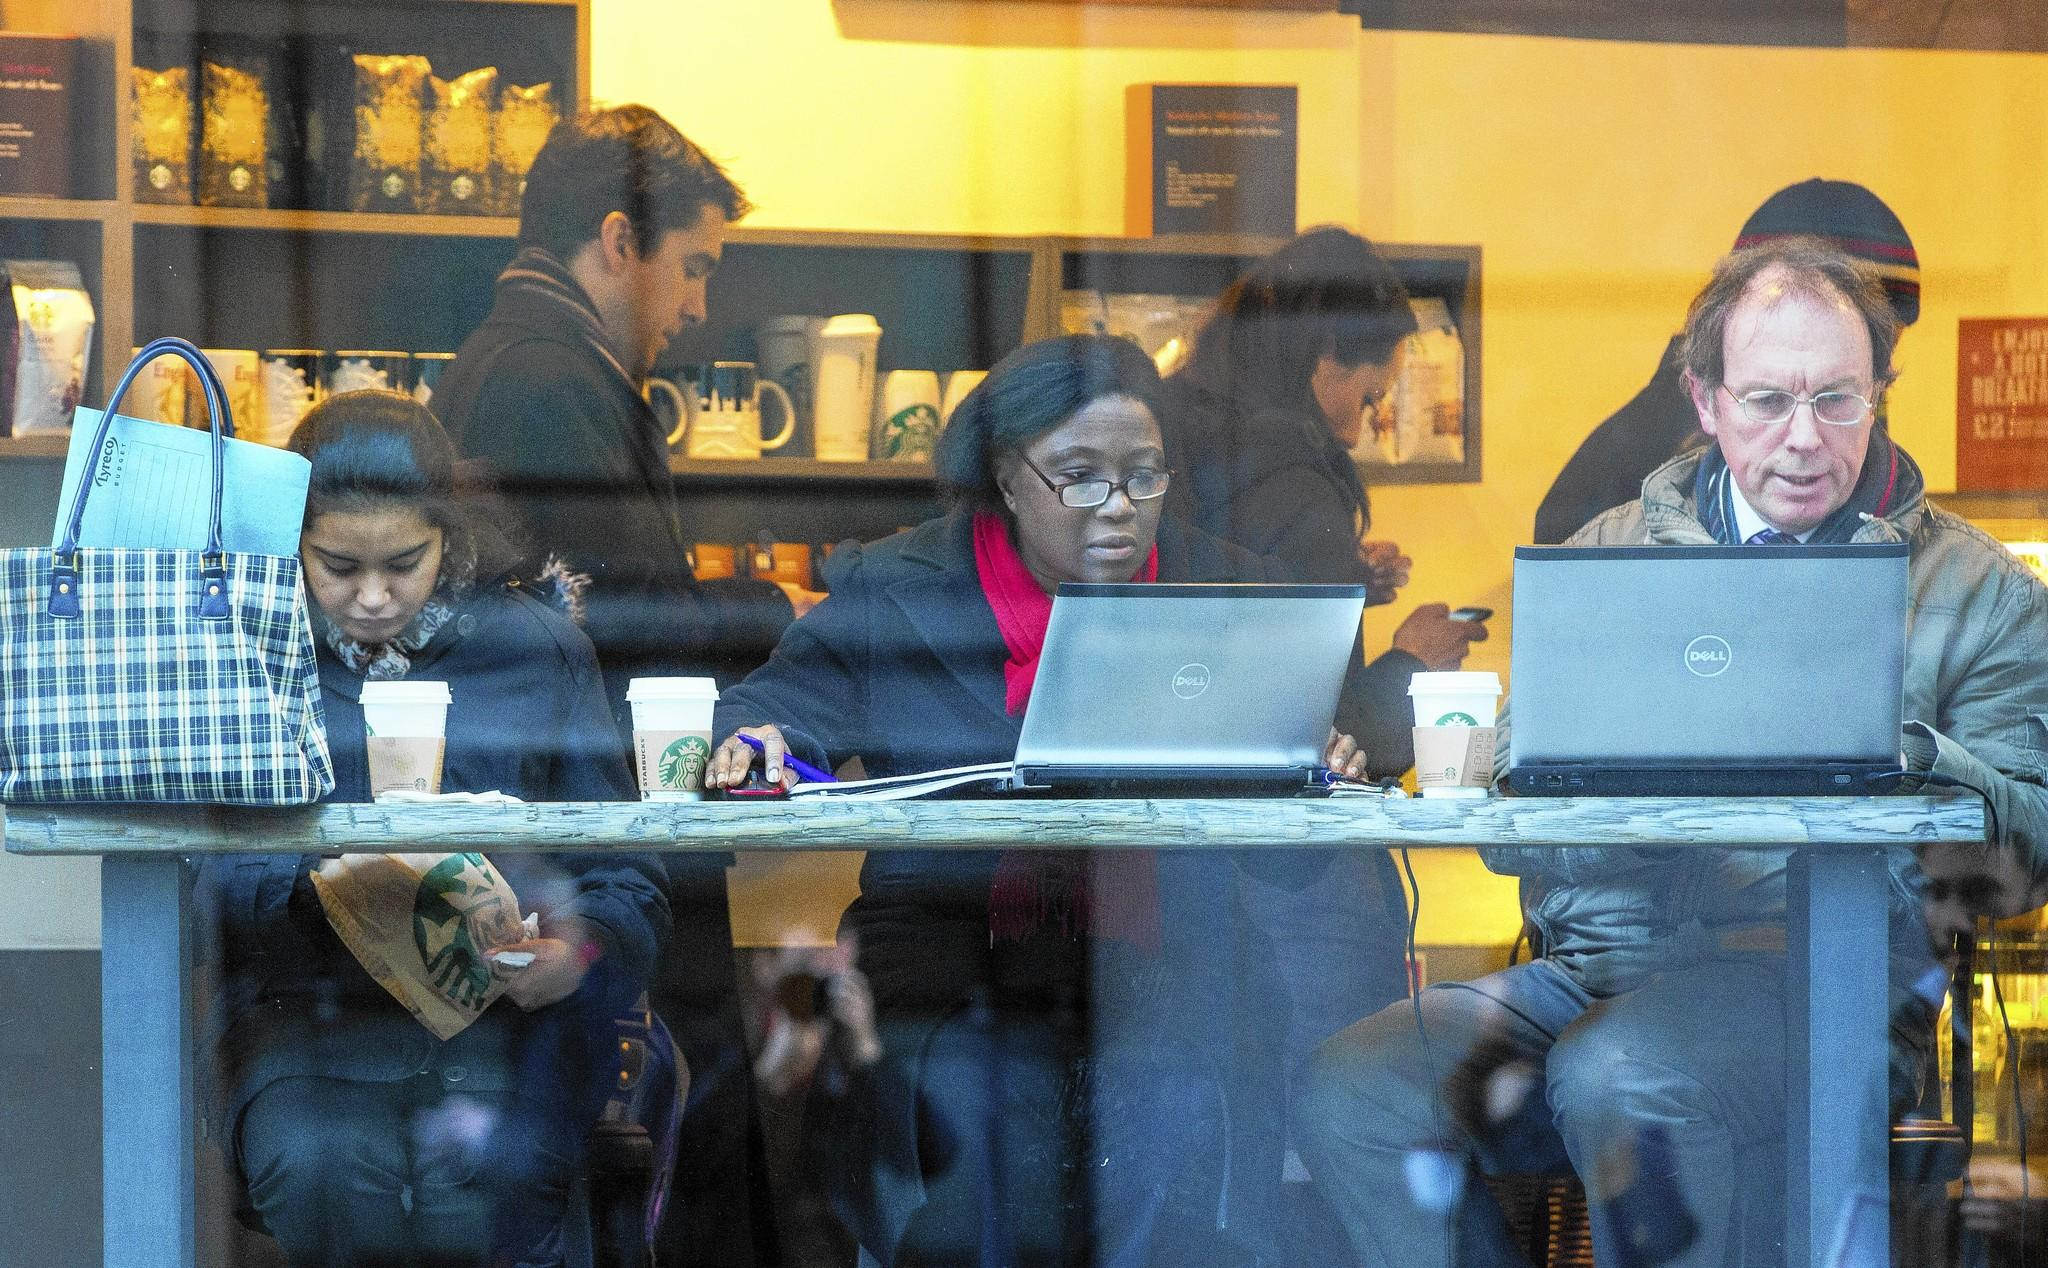 Customers concentrate on their laptops at a Starbucks in London recently.